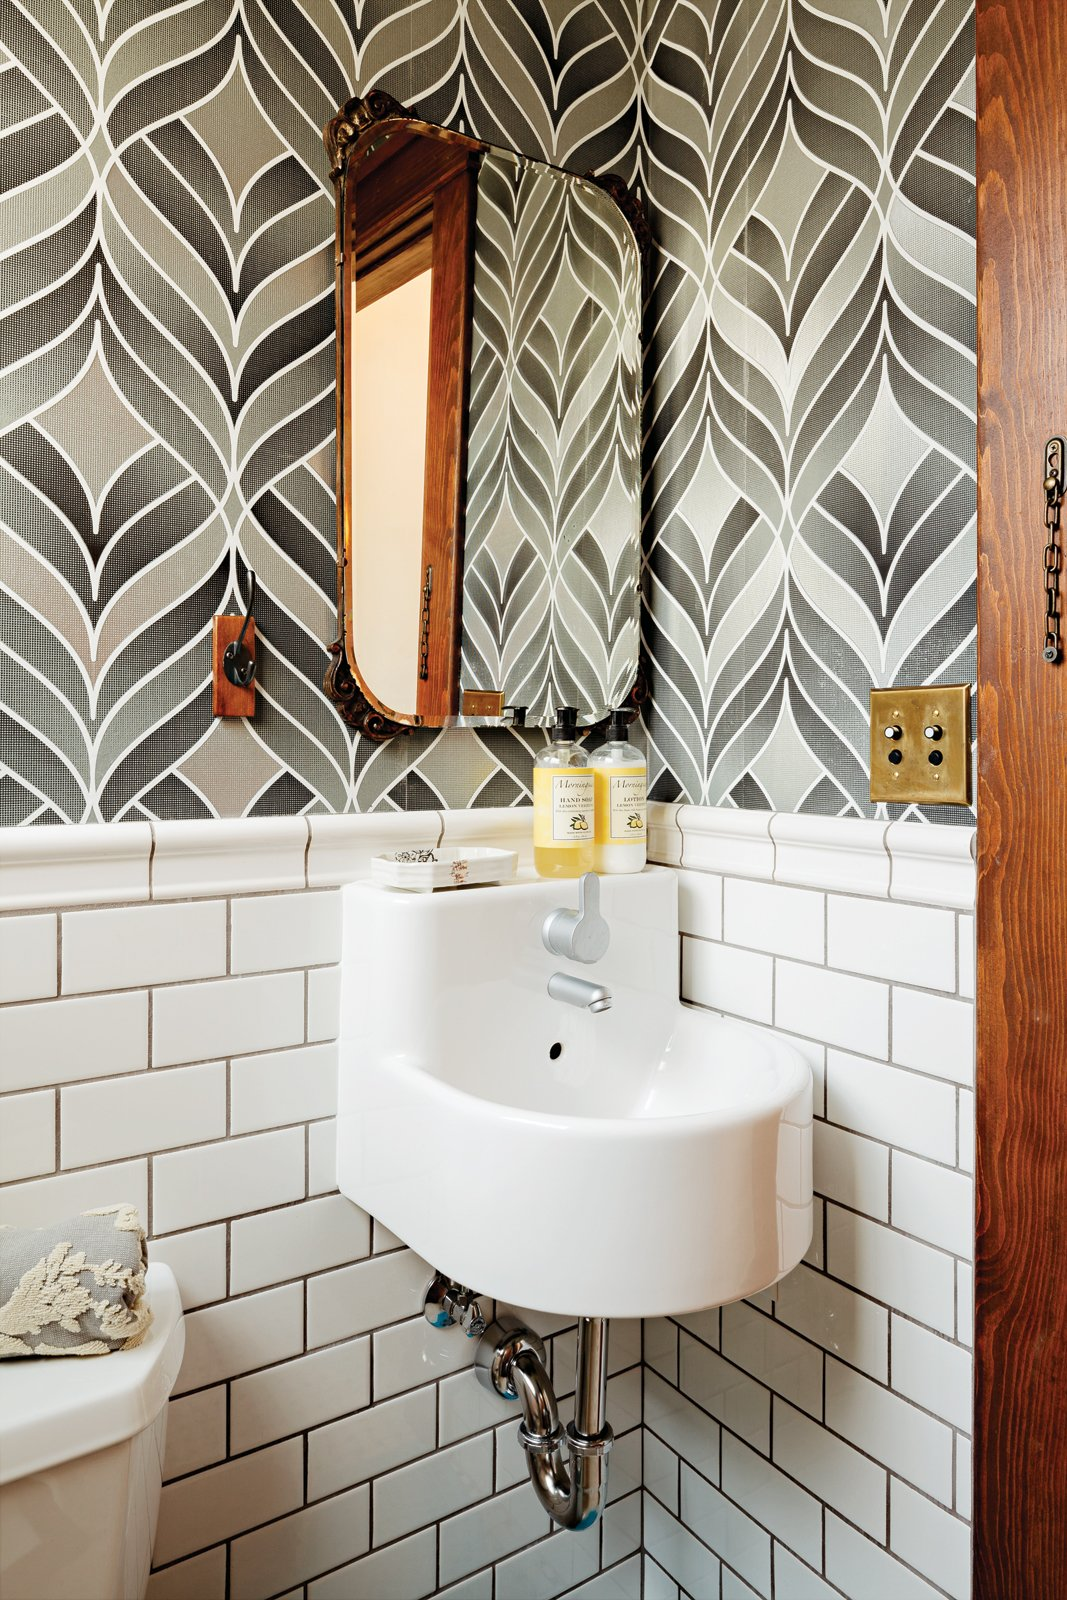 Bath Room, Wall Mount Sink, and Subway Tile Wall Playful wallpaper from Graham & Brown livens up the house's otherwise staid   powder room, which also contains a   pint-size Ikea sink.  Inspiring Wallpapers for the Modern Home by Kelsey Keith from Wallpaper That Fixes Walls